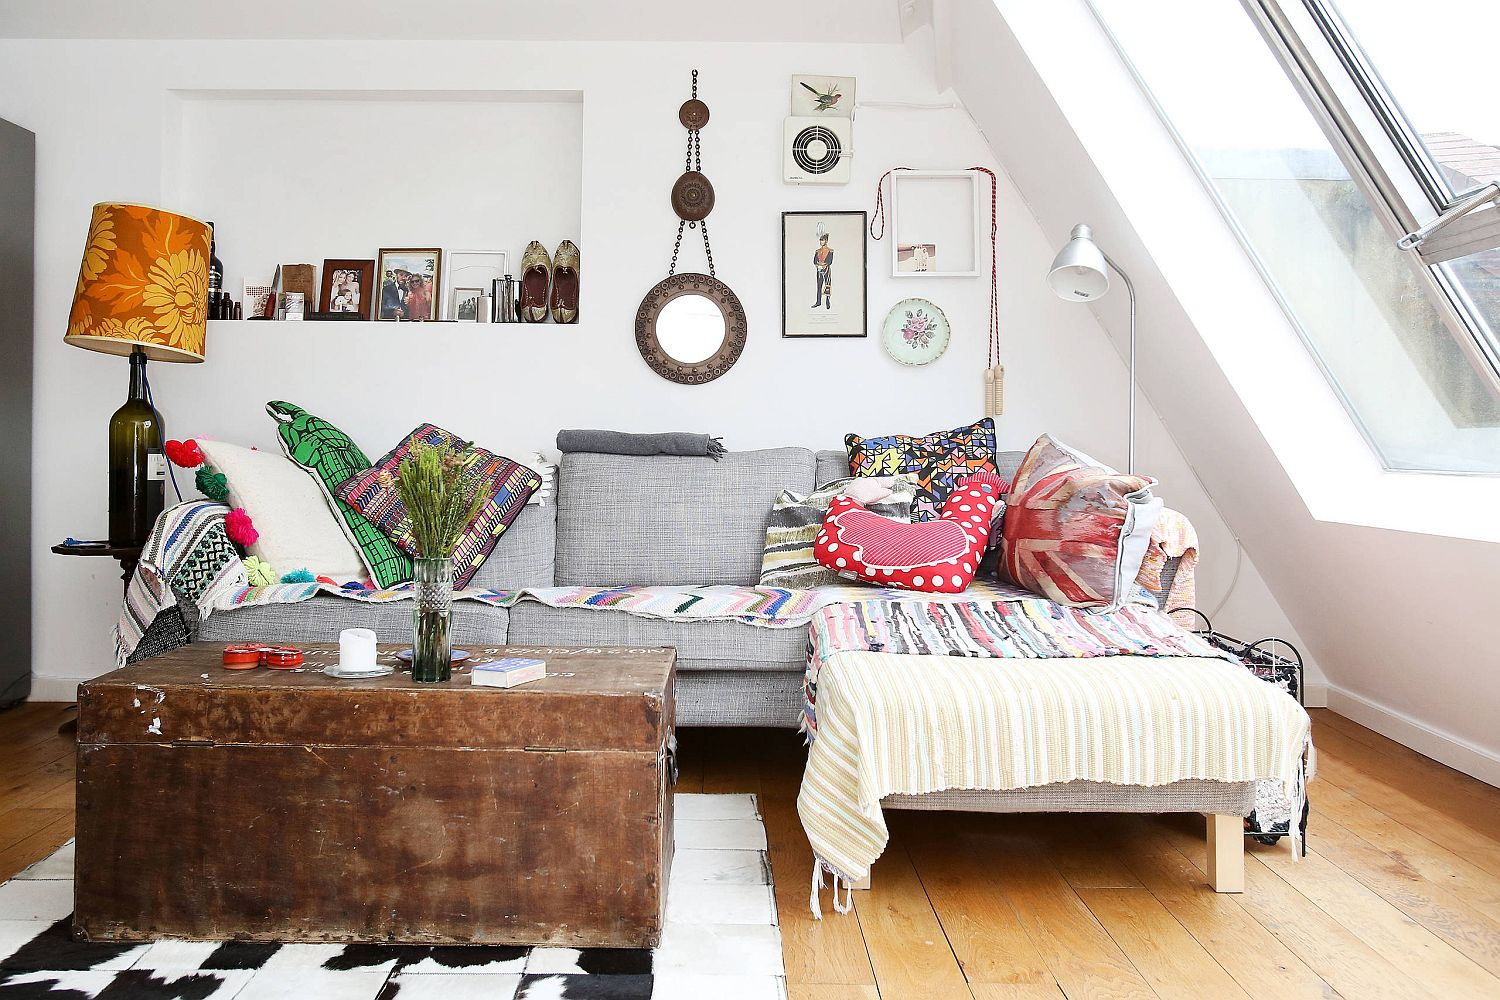 Find your personal blend of modern and boho influences to create that picture-perfect living room